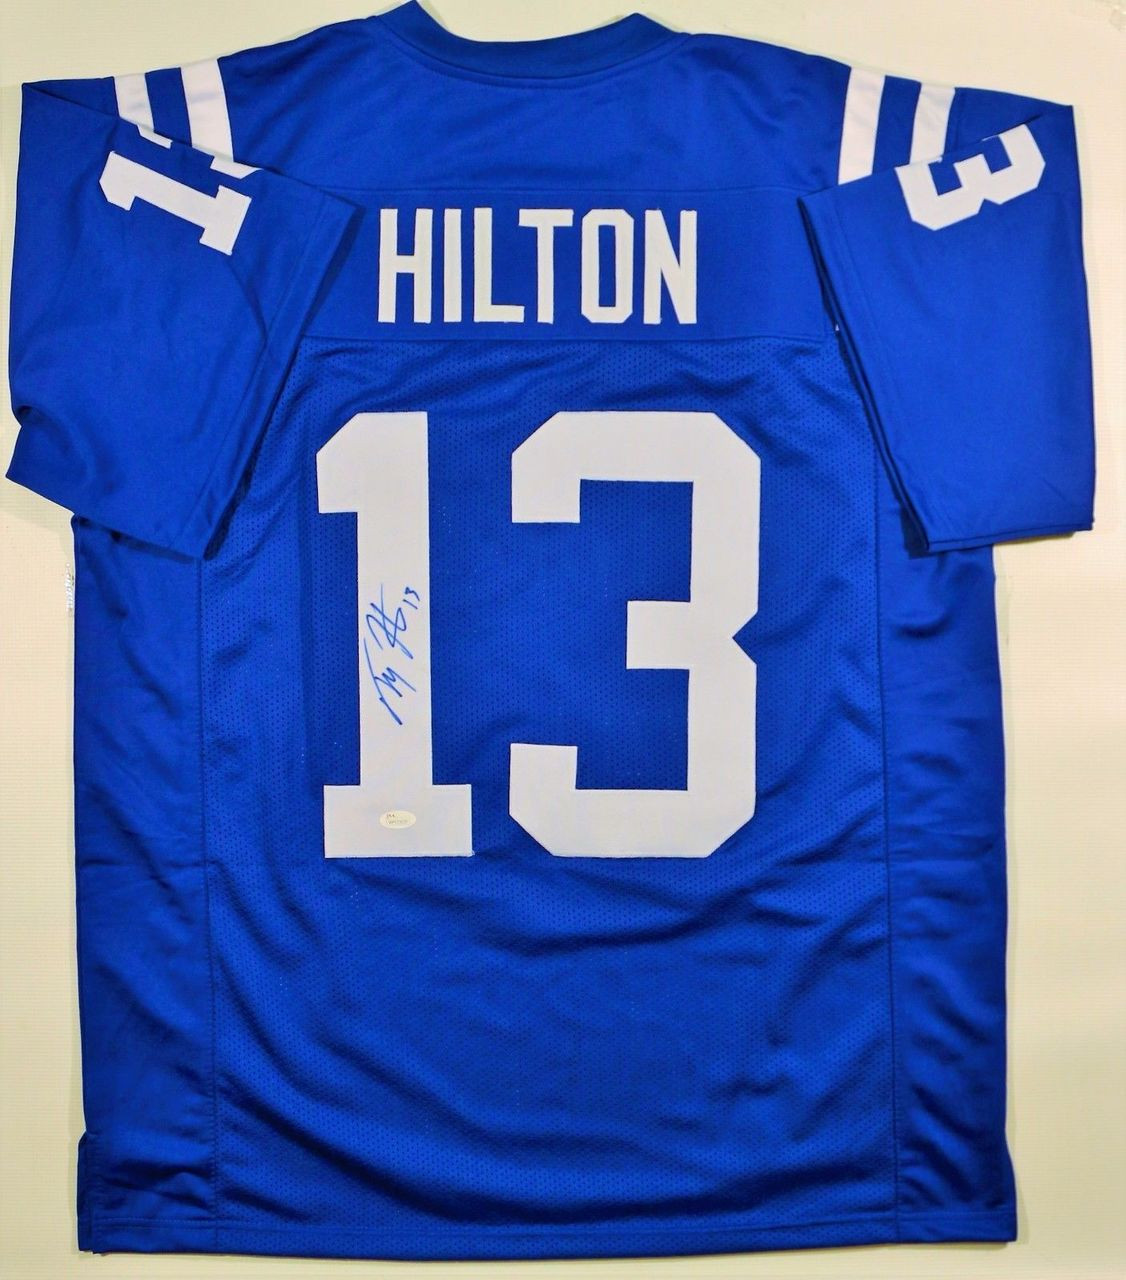 5e042f5dd3c Copy of TY Hilton Indianapolis Colts Autographed Custom NFL Football Jersey  - Maverick Autographs and Collectibles